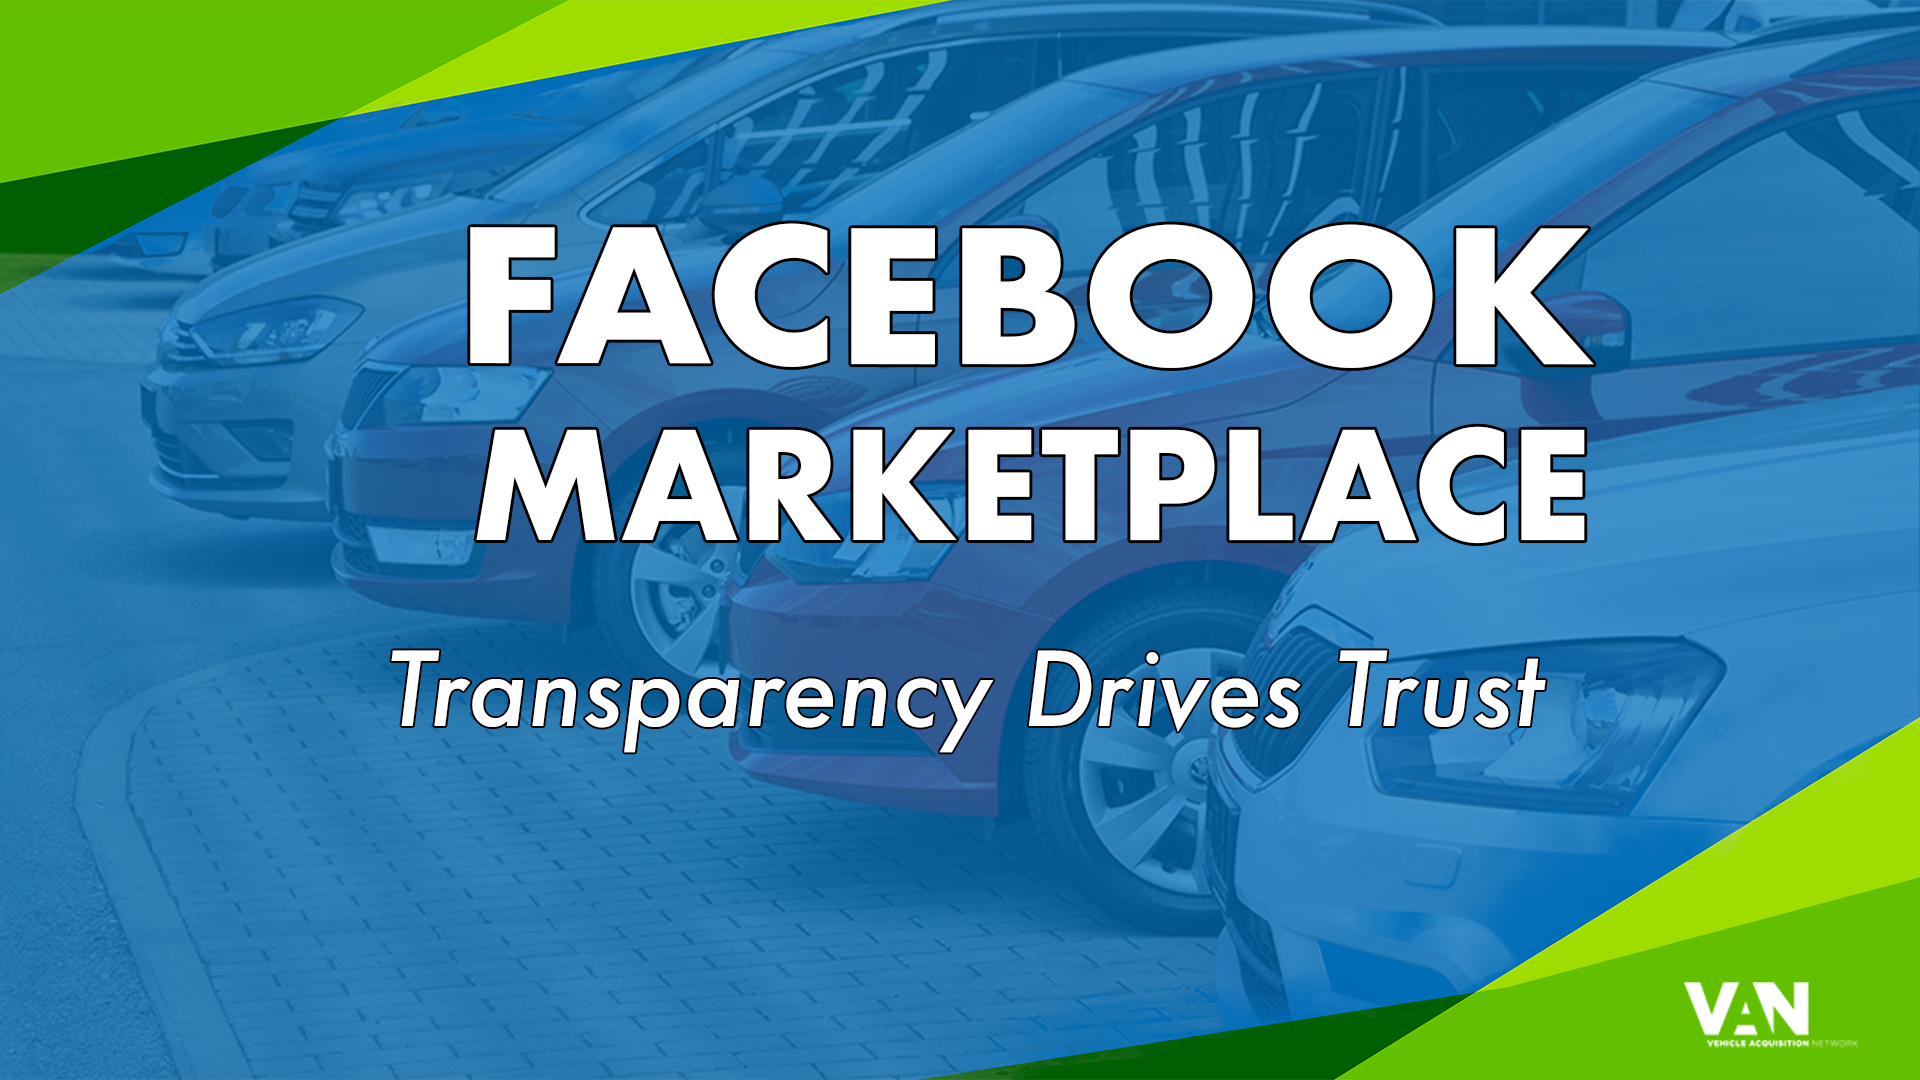 Transparency drives trust on Facebook Marketplace